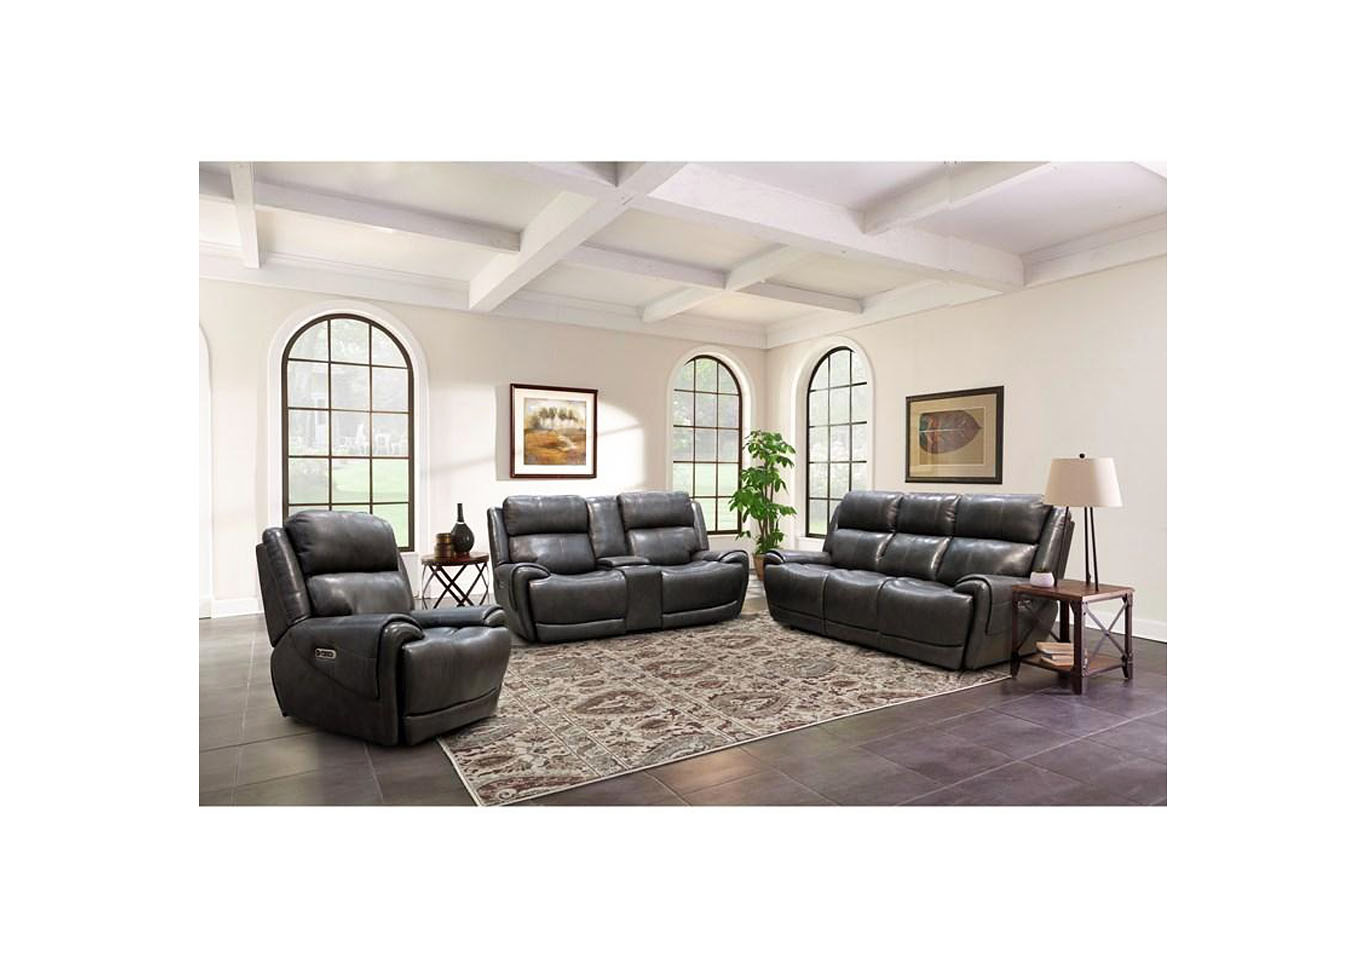 "Spencer Top Grain Leather Power Dual Reclining Love Seat with Power Headrest and USB Charging  "" Gray,Instore"